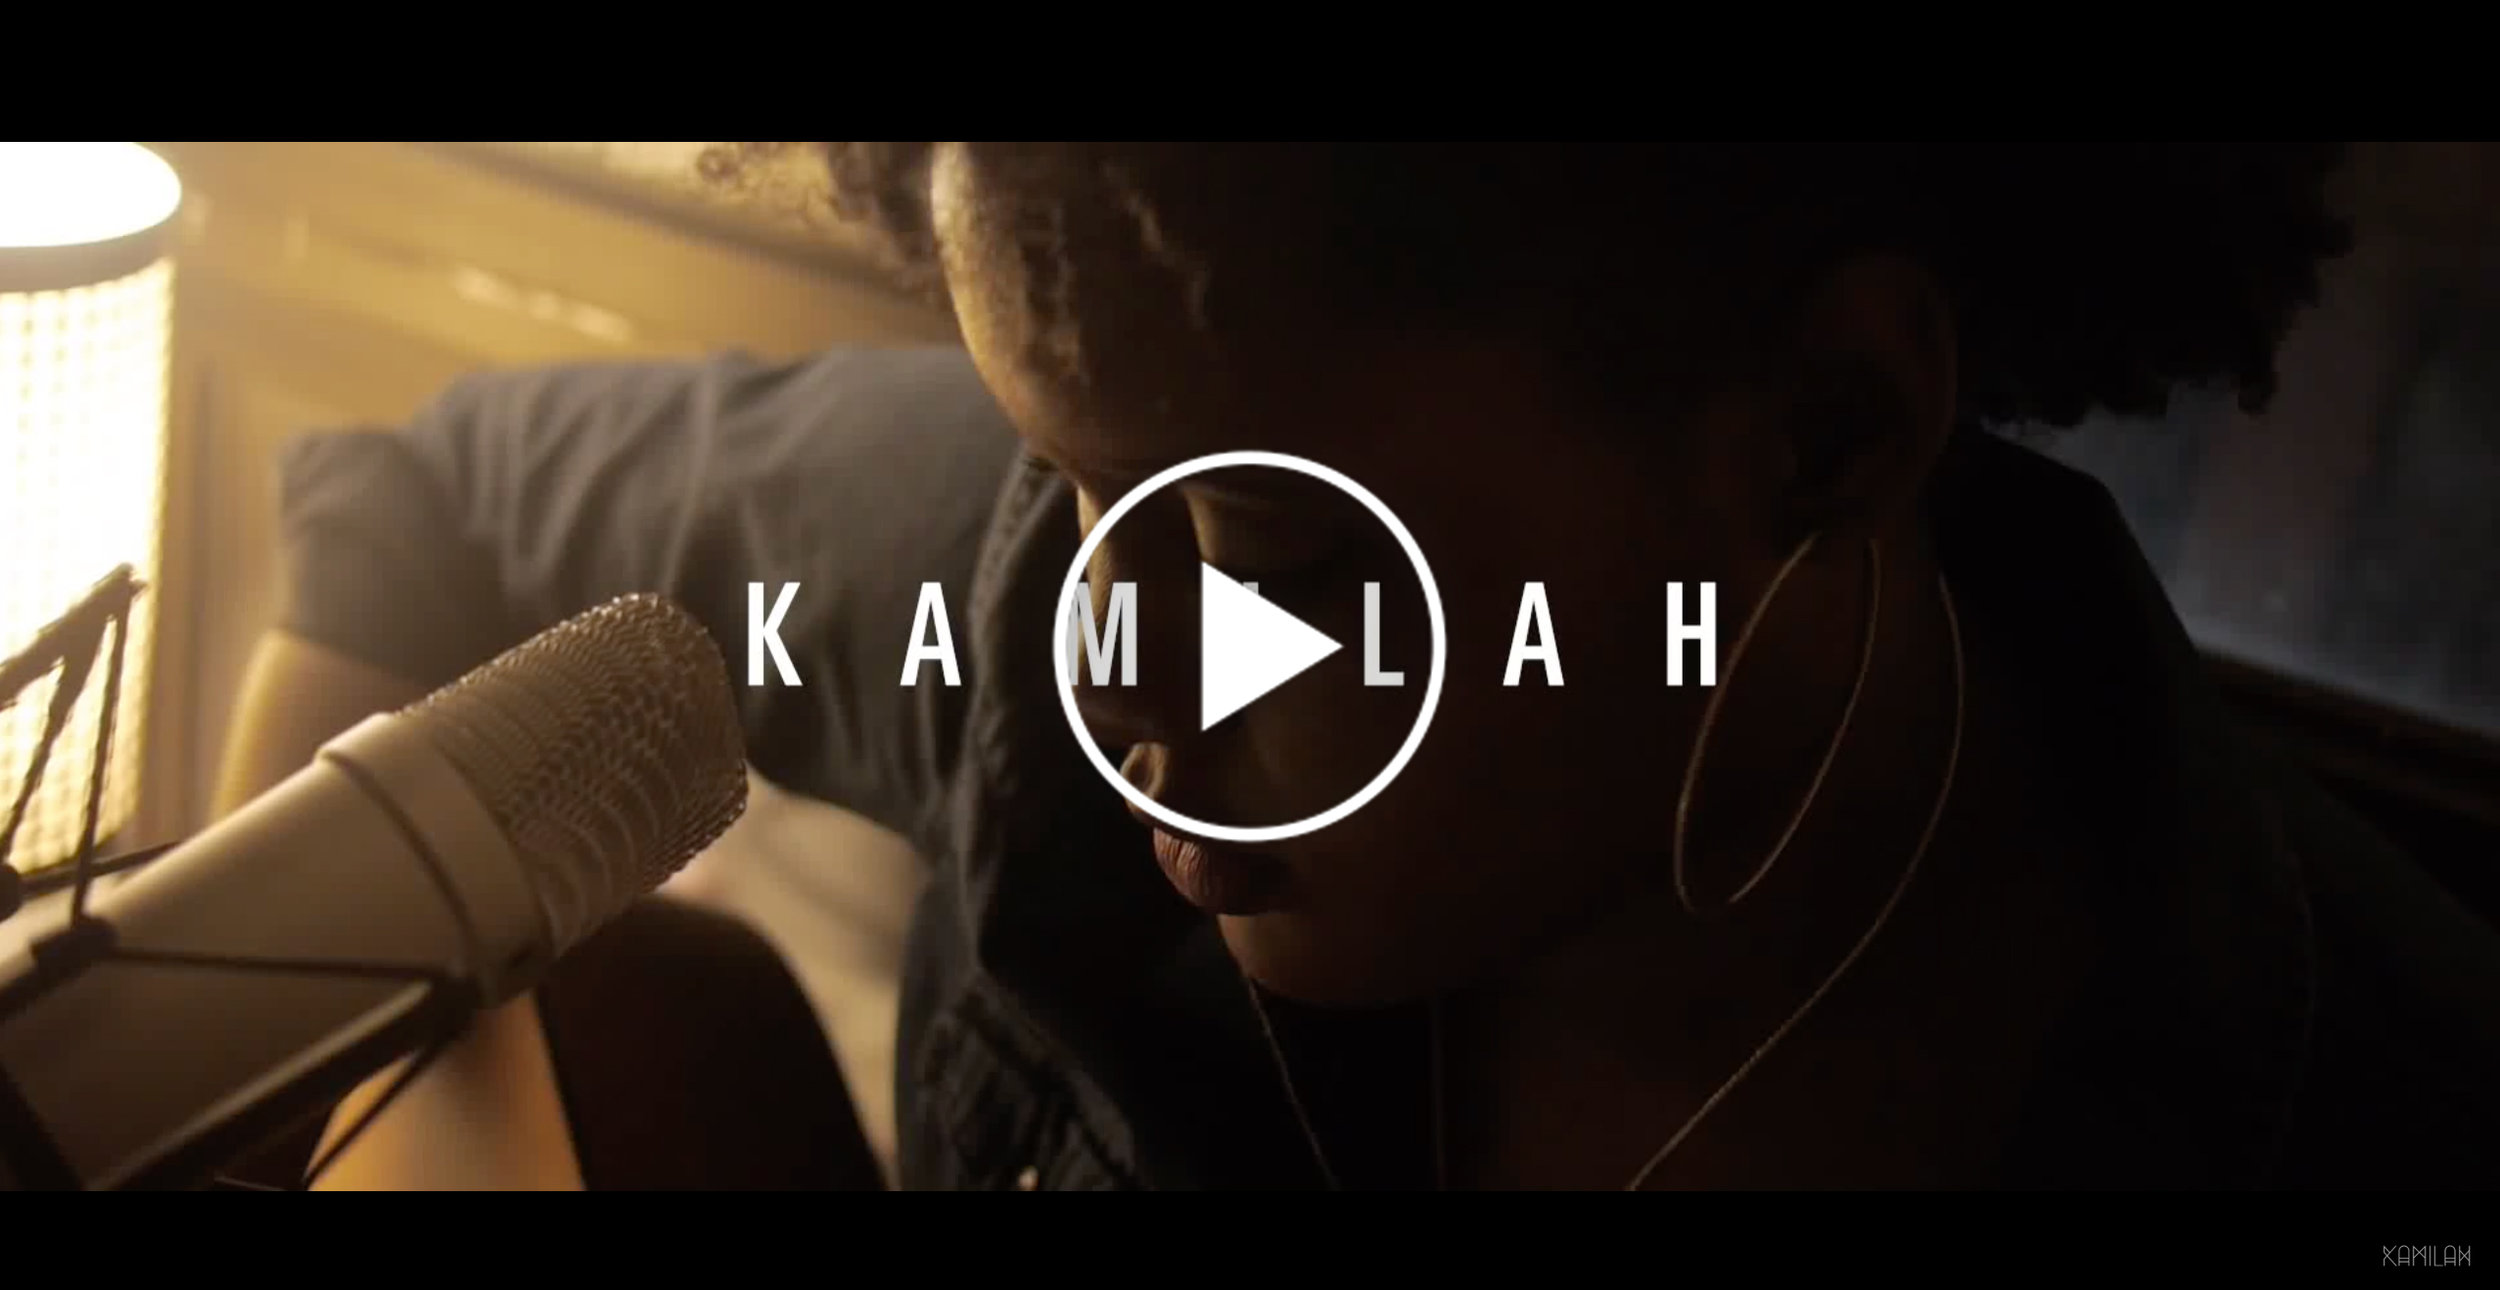 Original song  '1600 Miles' written and performed by Kamilah Gibson.